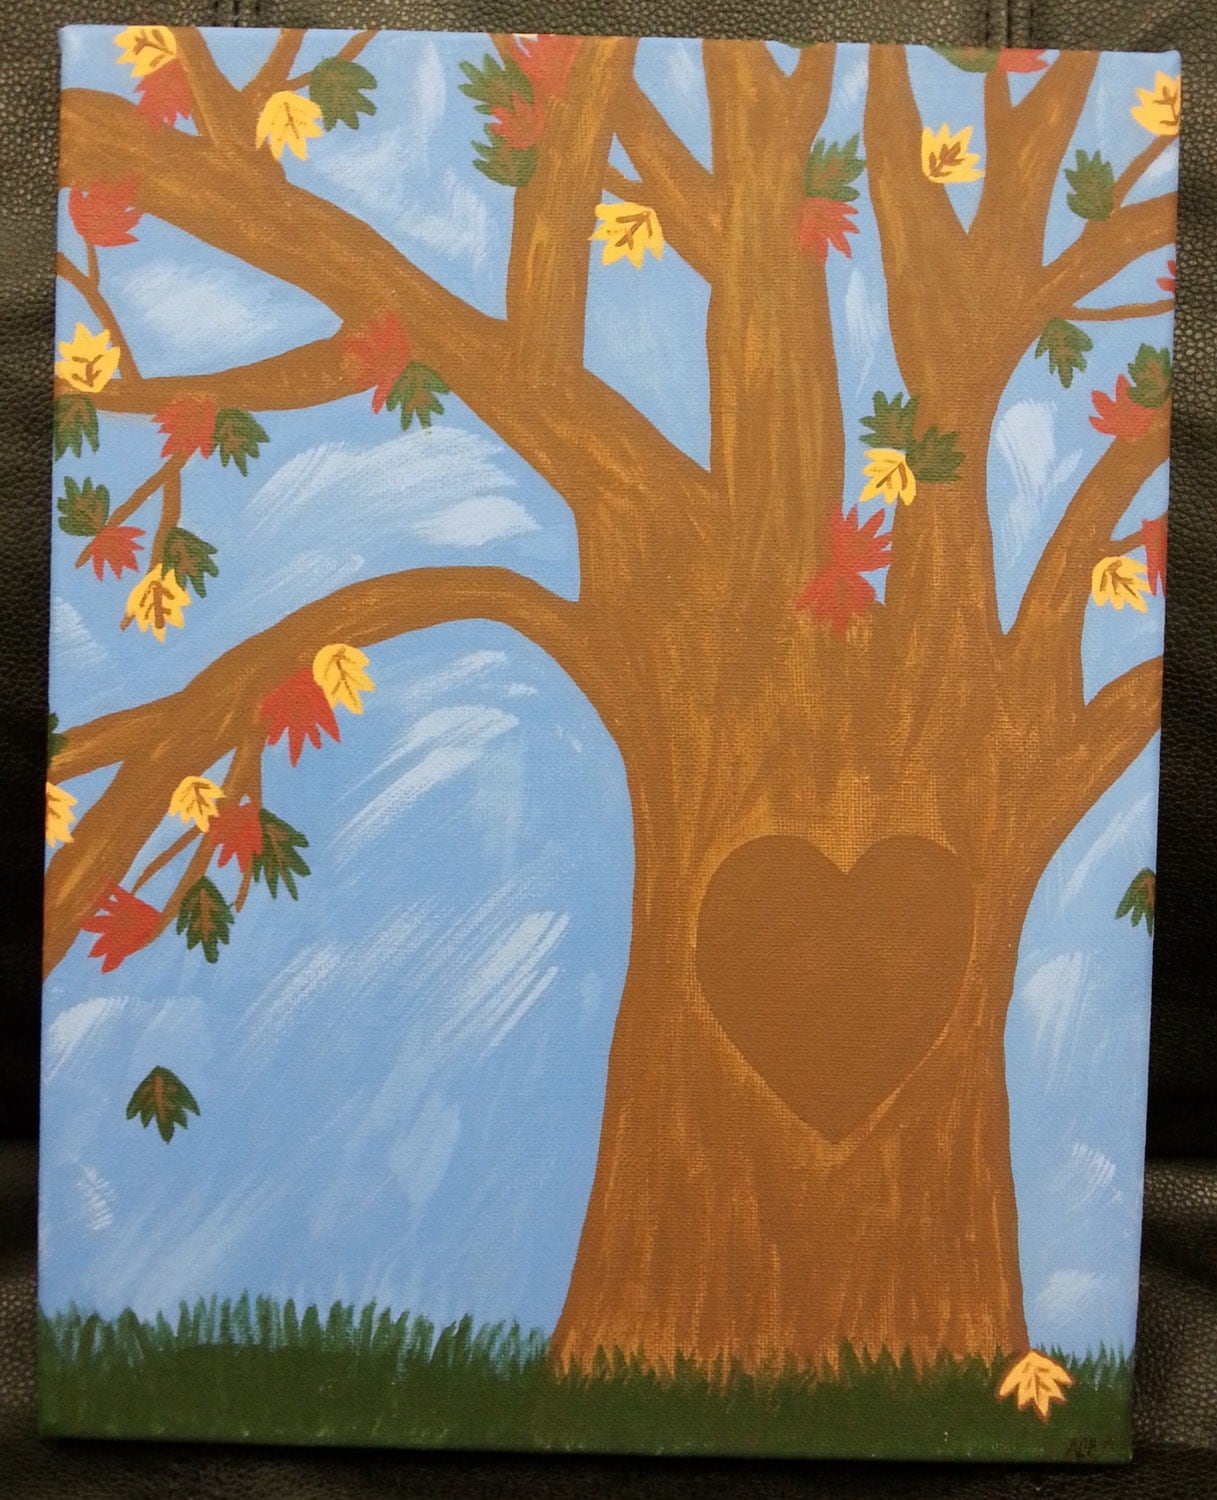 Wedding Gift Canvas Art : Personalized Fall Wedding Gift Canvas Art Painting by blisshappens